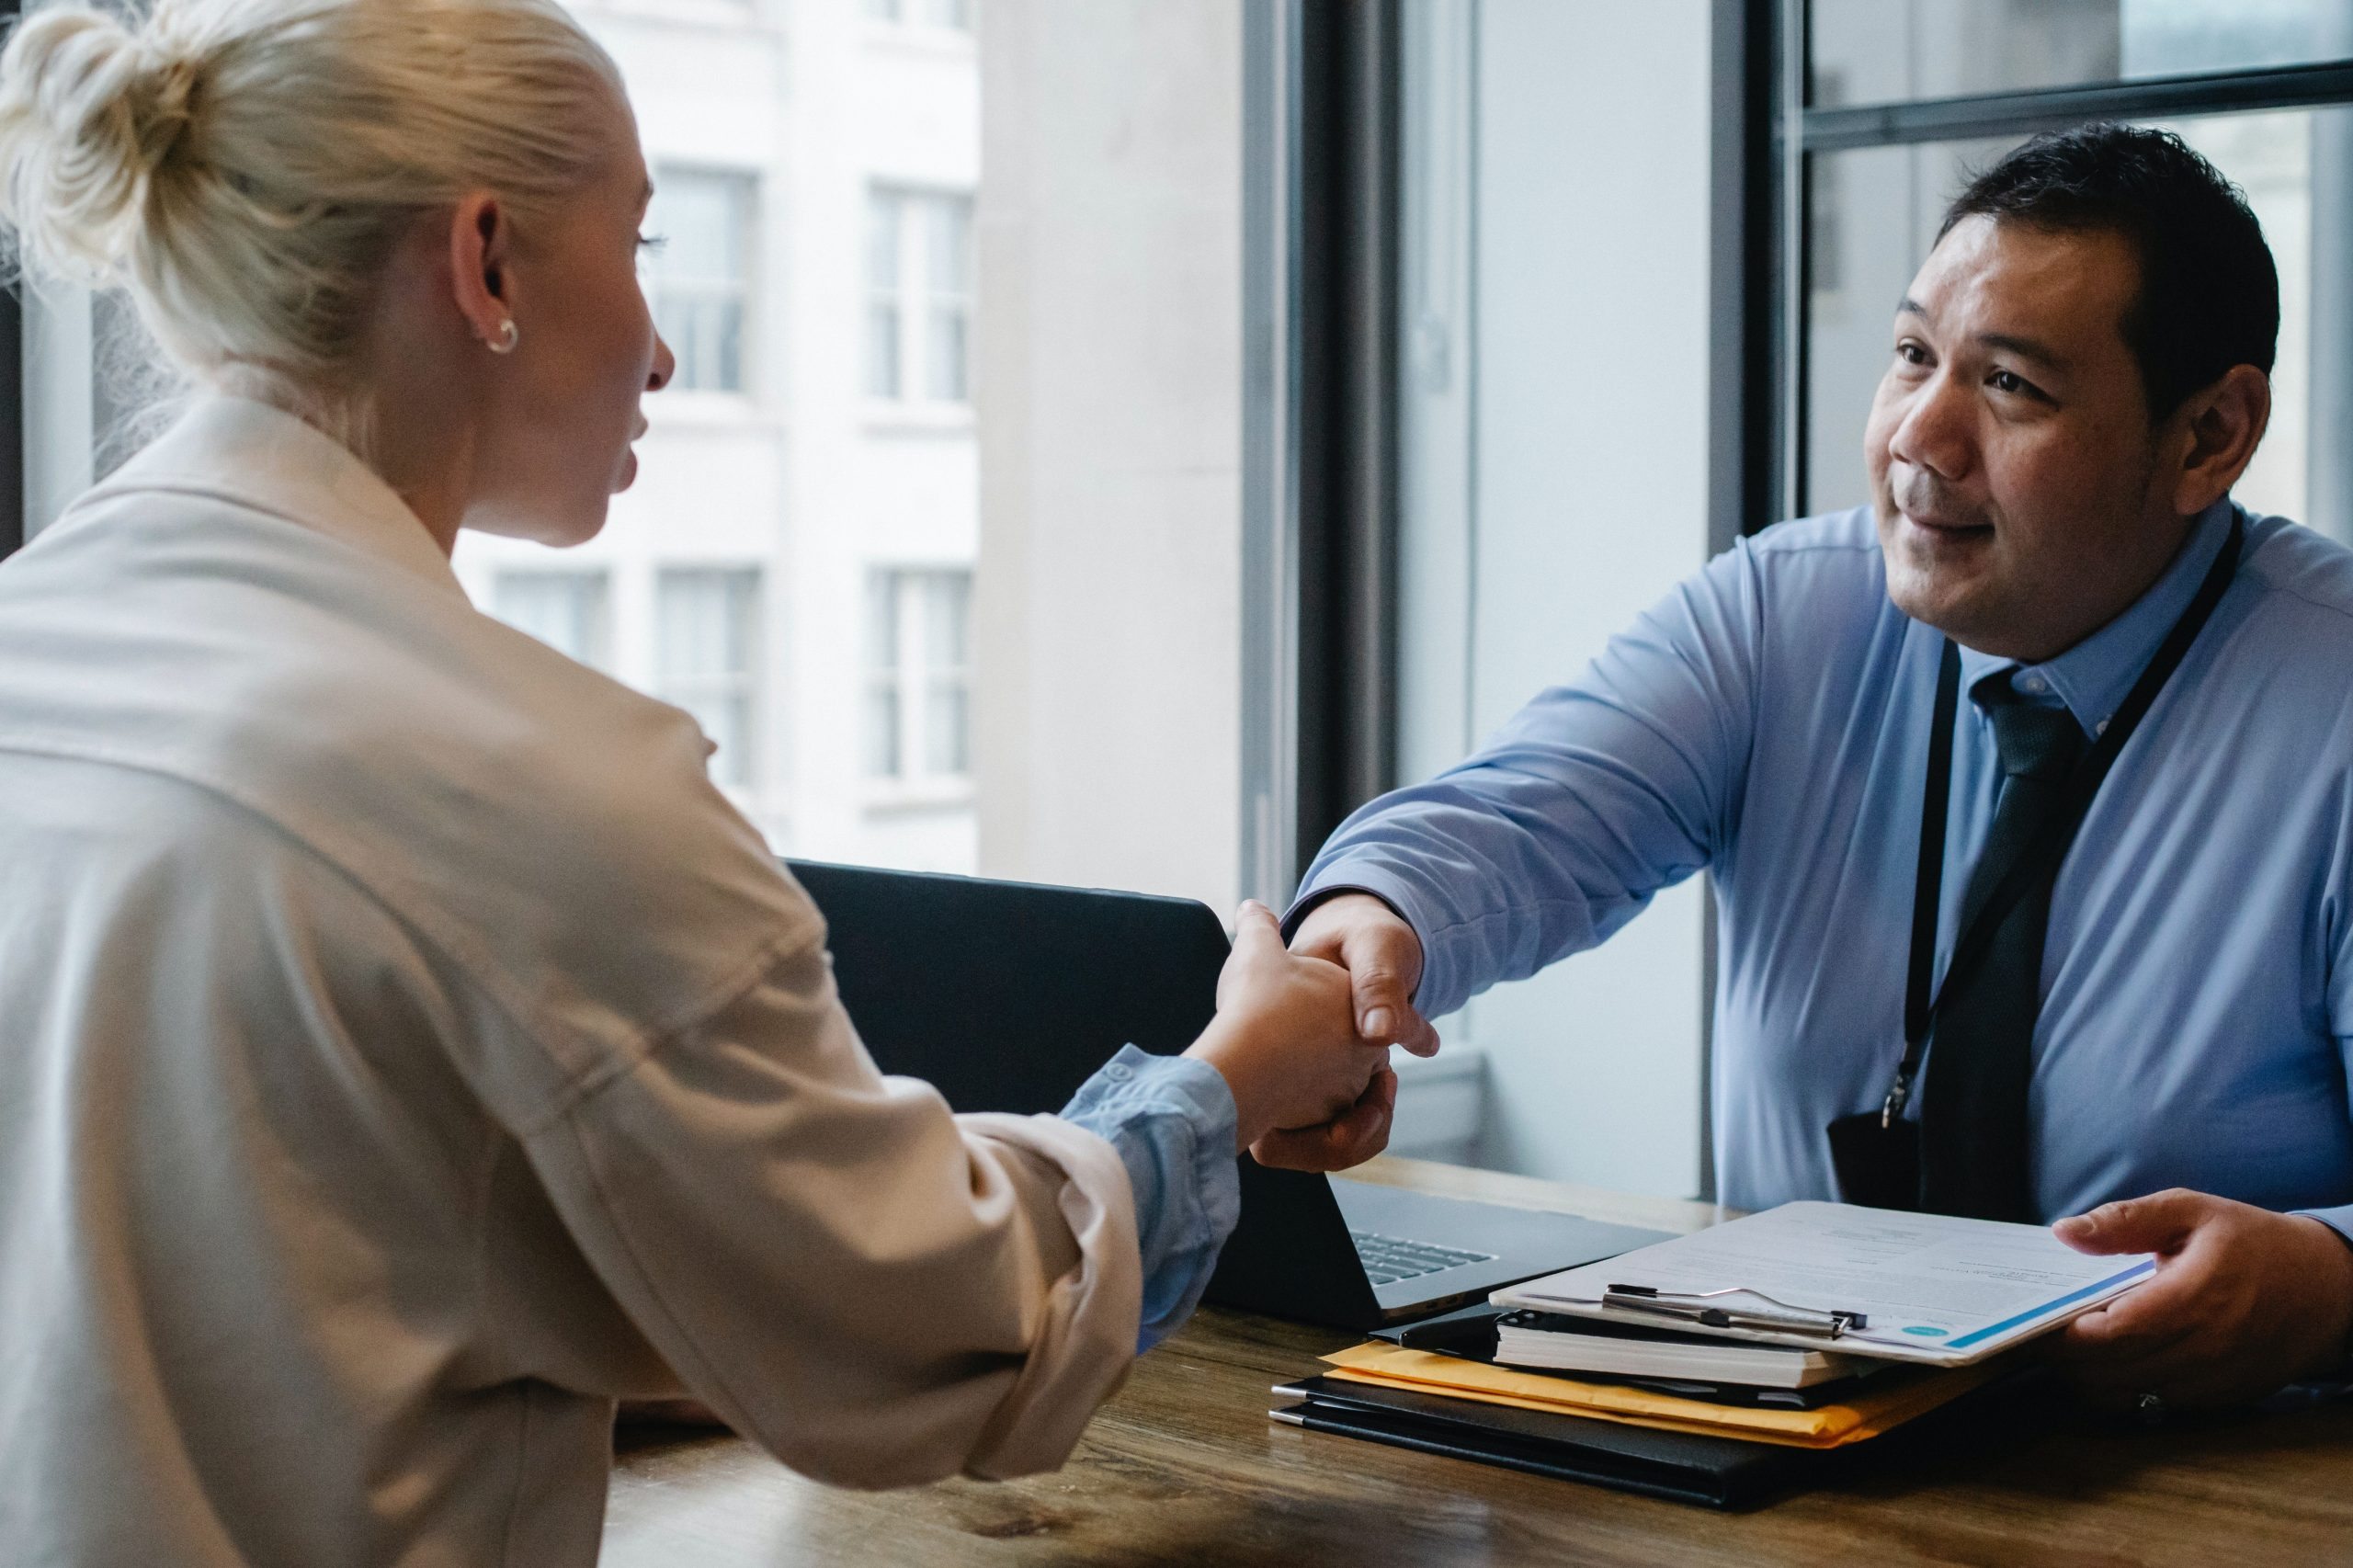 4 Questions You NEED to Ask Employers at the End of Your Job Interviews